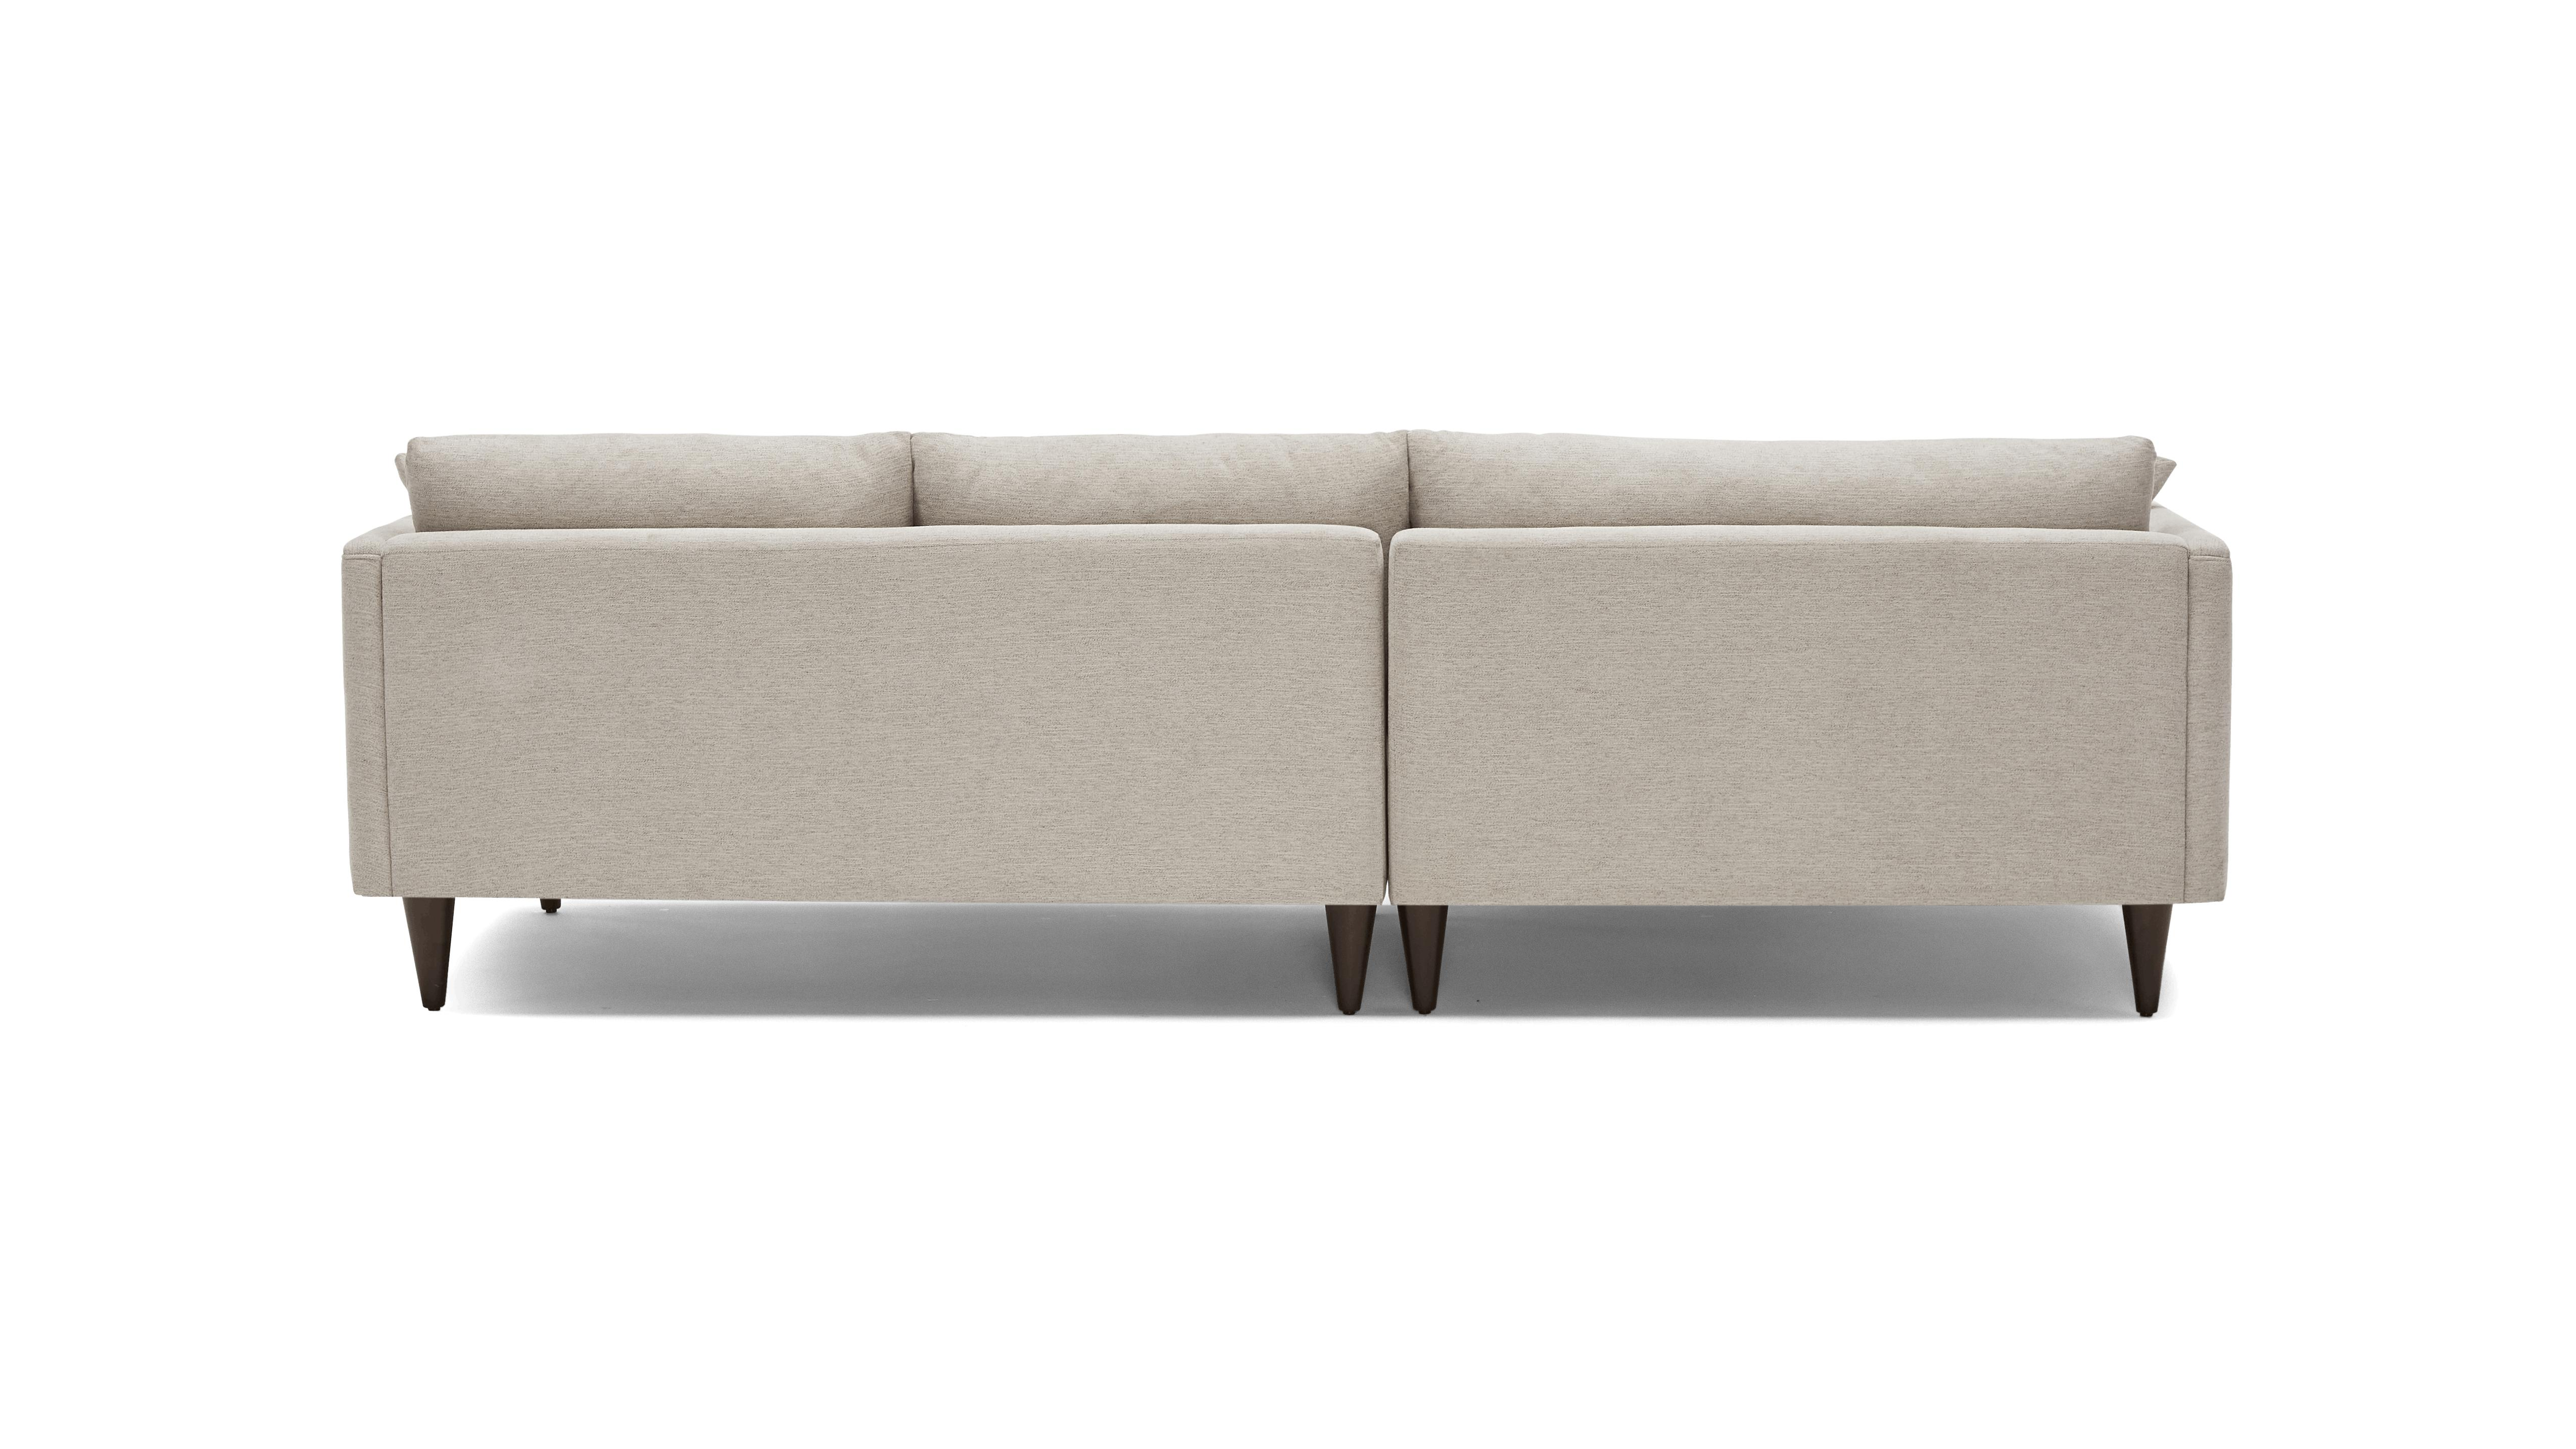 Beige/White Lewis Mid Century Modern Sectional - Merit Dove - Mocha - Right - Cone